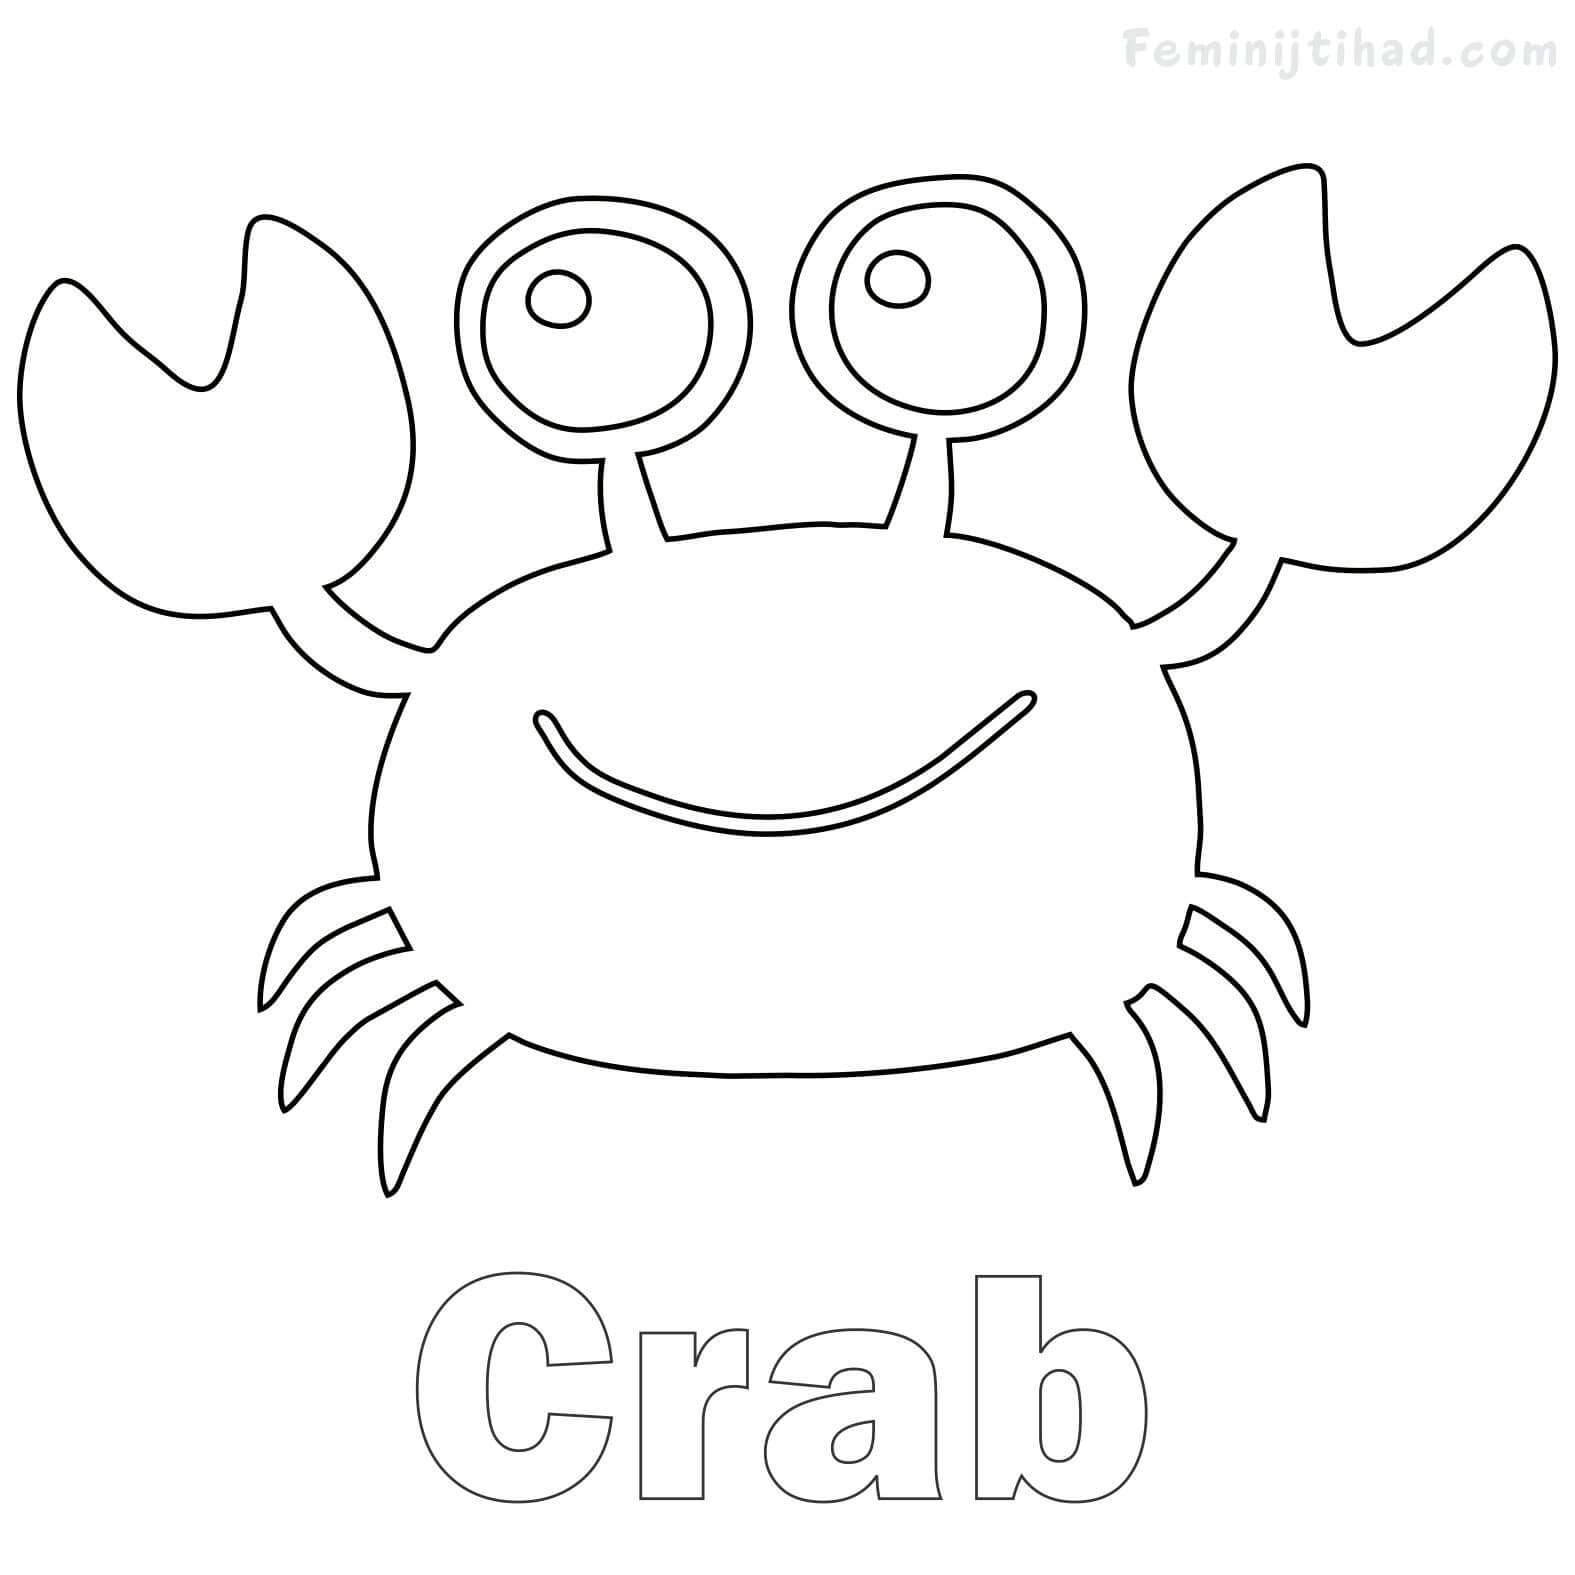 cute crab coloring pages crab coloring pages download and print crab coloring pages coloring pages crab cute